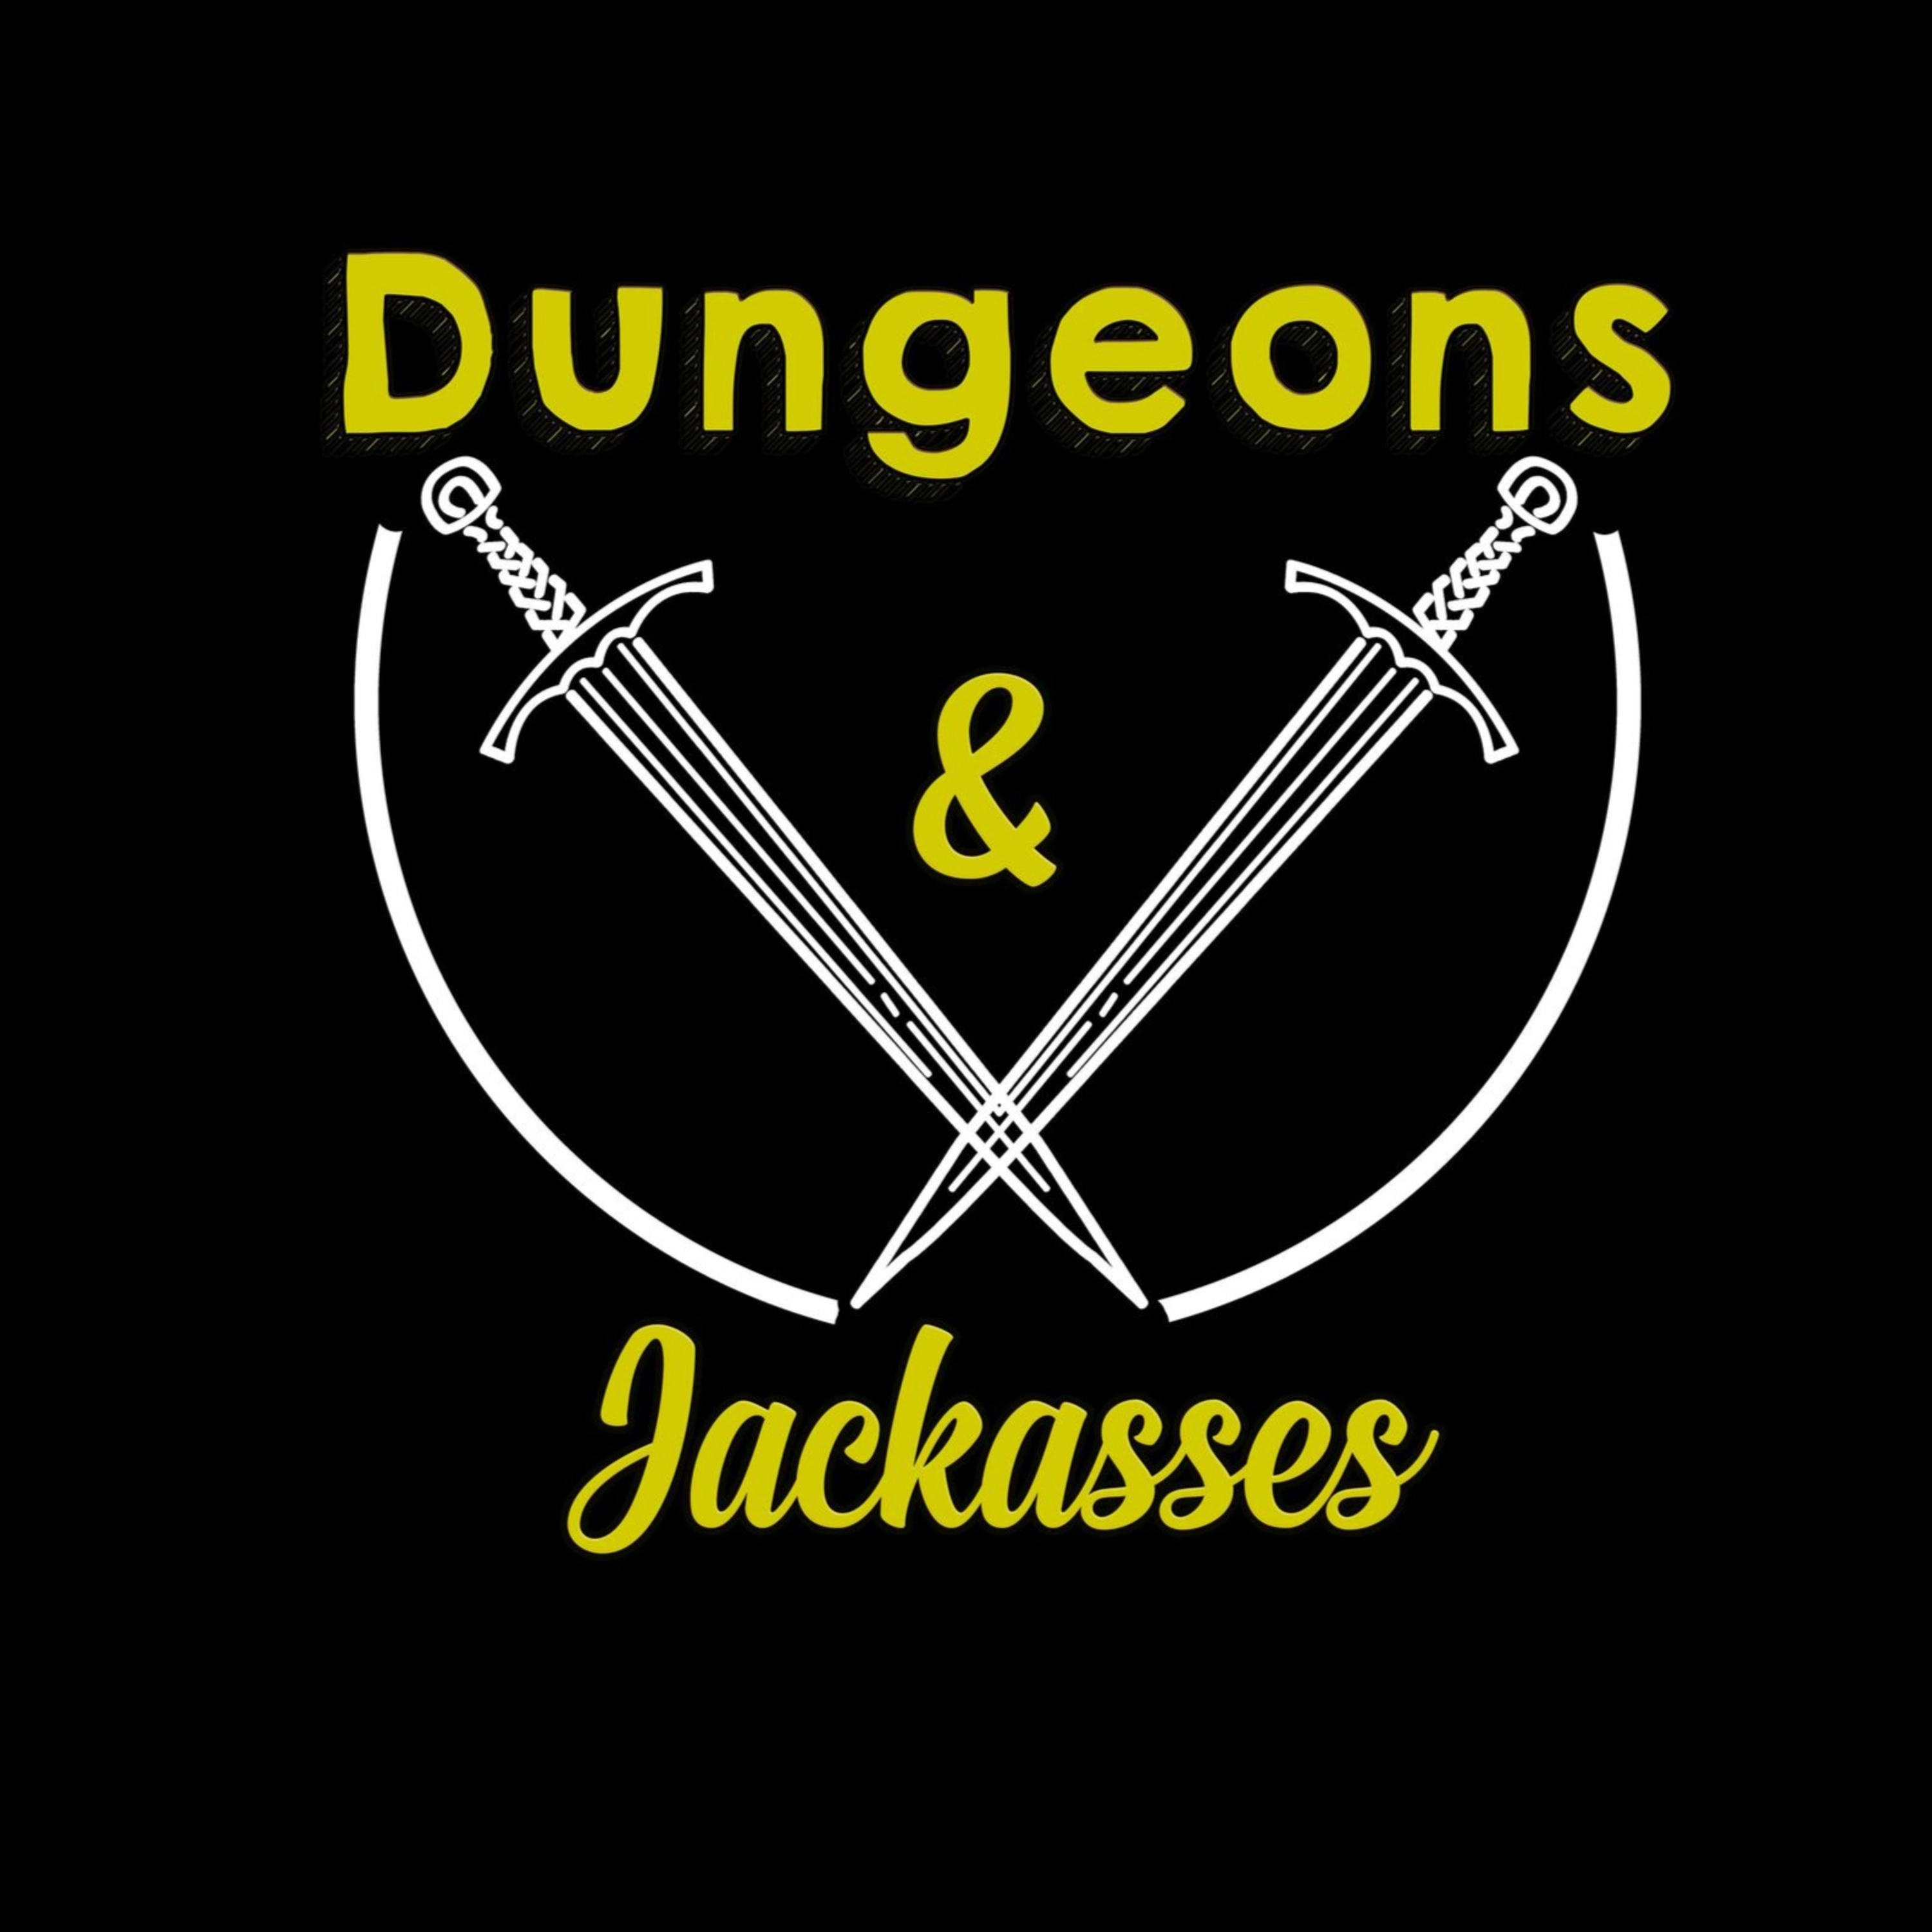 Dungeons and Jackasses